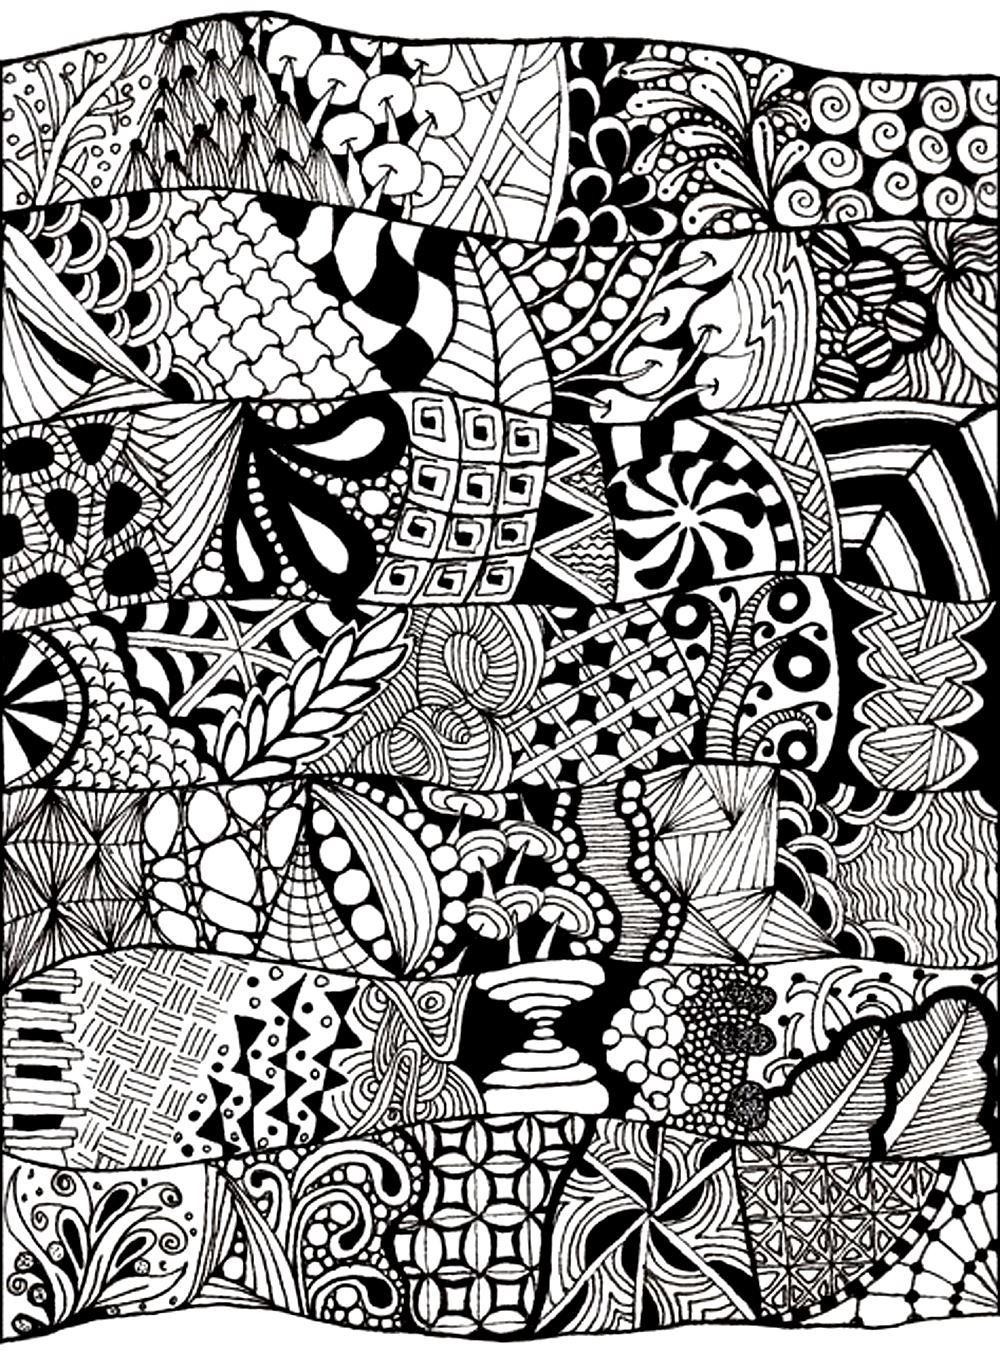 Free coloring pages for adults abstract - Free Coloring Page Coloring Adult Zen Anti Stress Abstract